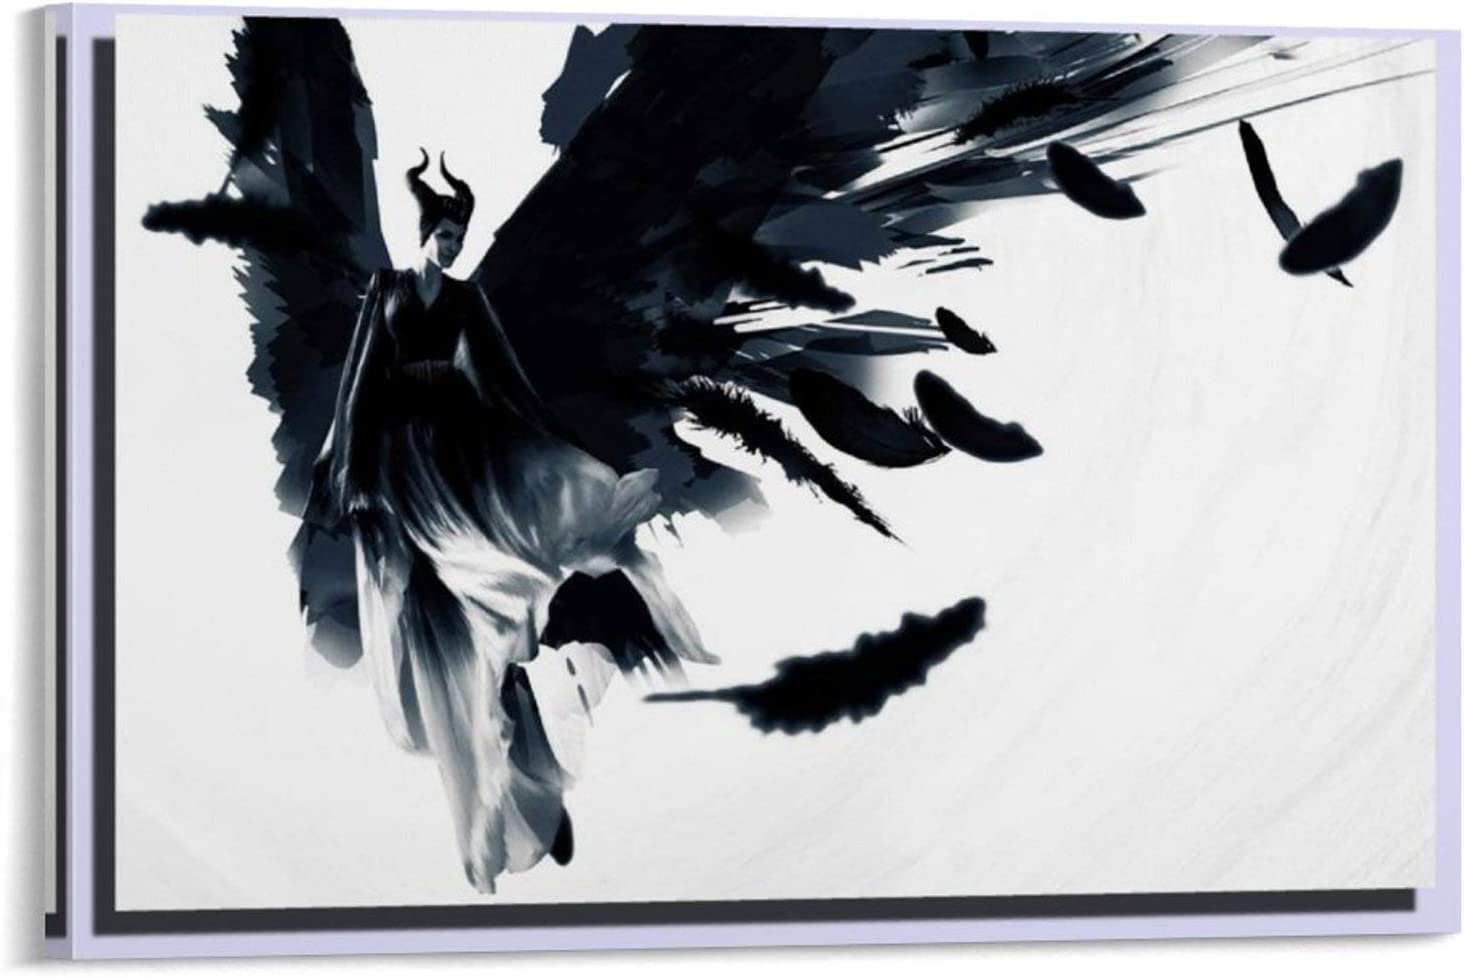 ZX198 Home Decor Art Painting HD Print Oil Painting on Canvas,Maleficent Mistress of Evil Poster Wall Art for living room Print Artwork Wall Art Decor Poster painting bedroom bathroom Decorations Canv